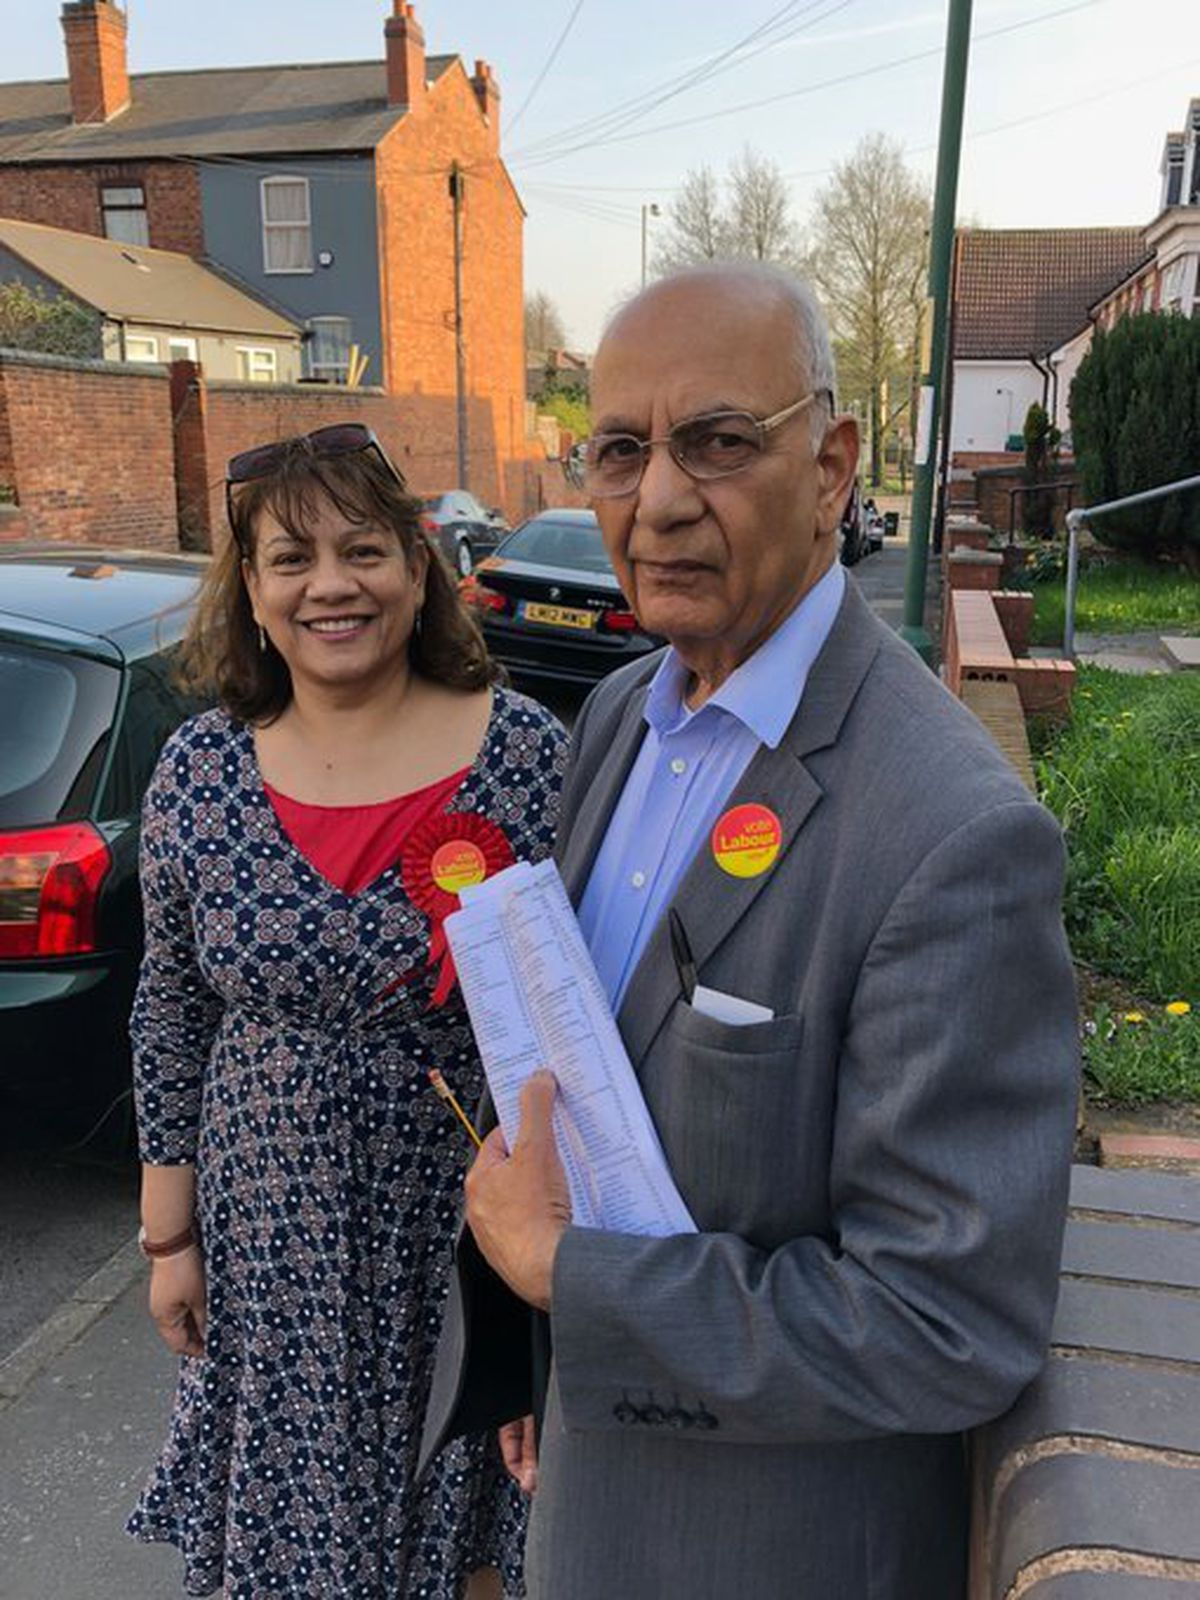 Walsall South MP Valerie Vaz out campaigning with Pleck councillor Harbans Sarohi in 2018. Photo: Valerie Vaz.